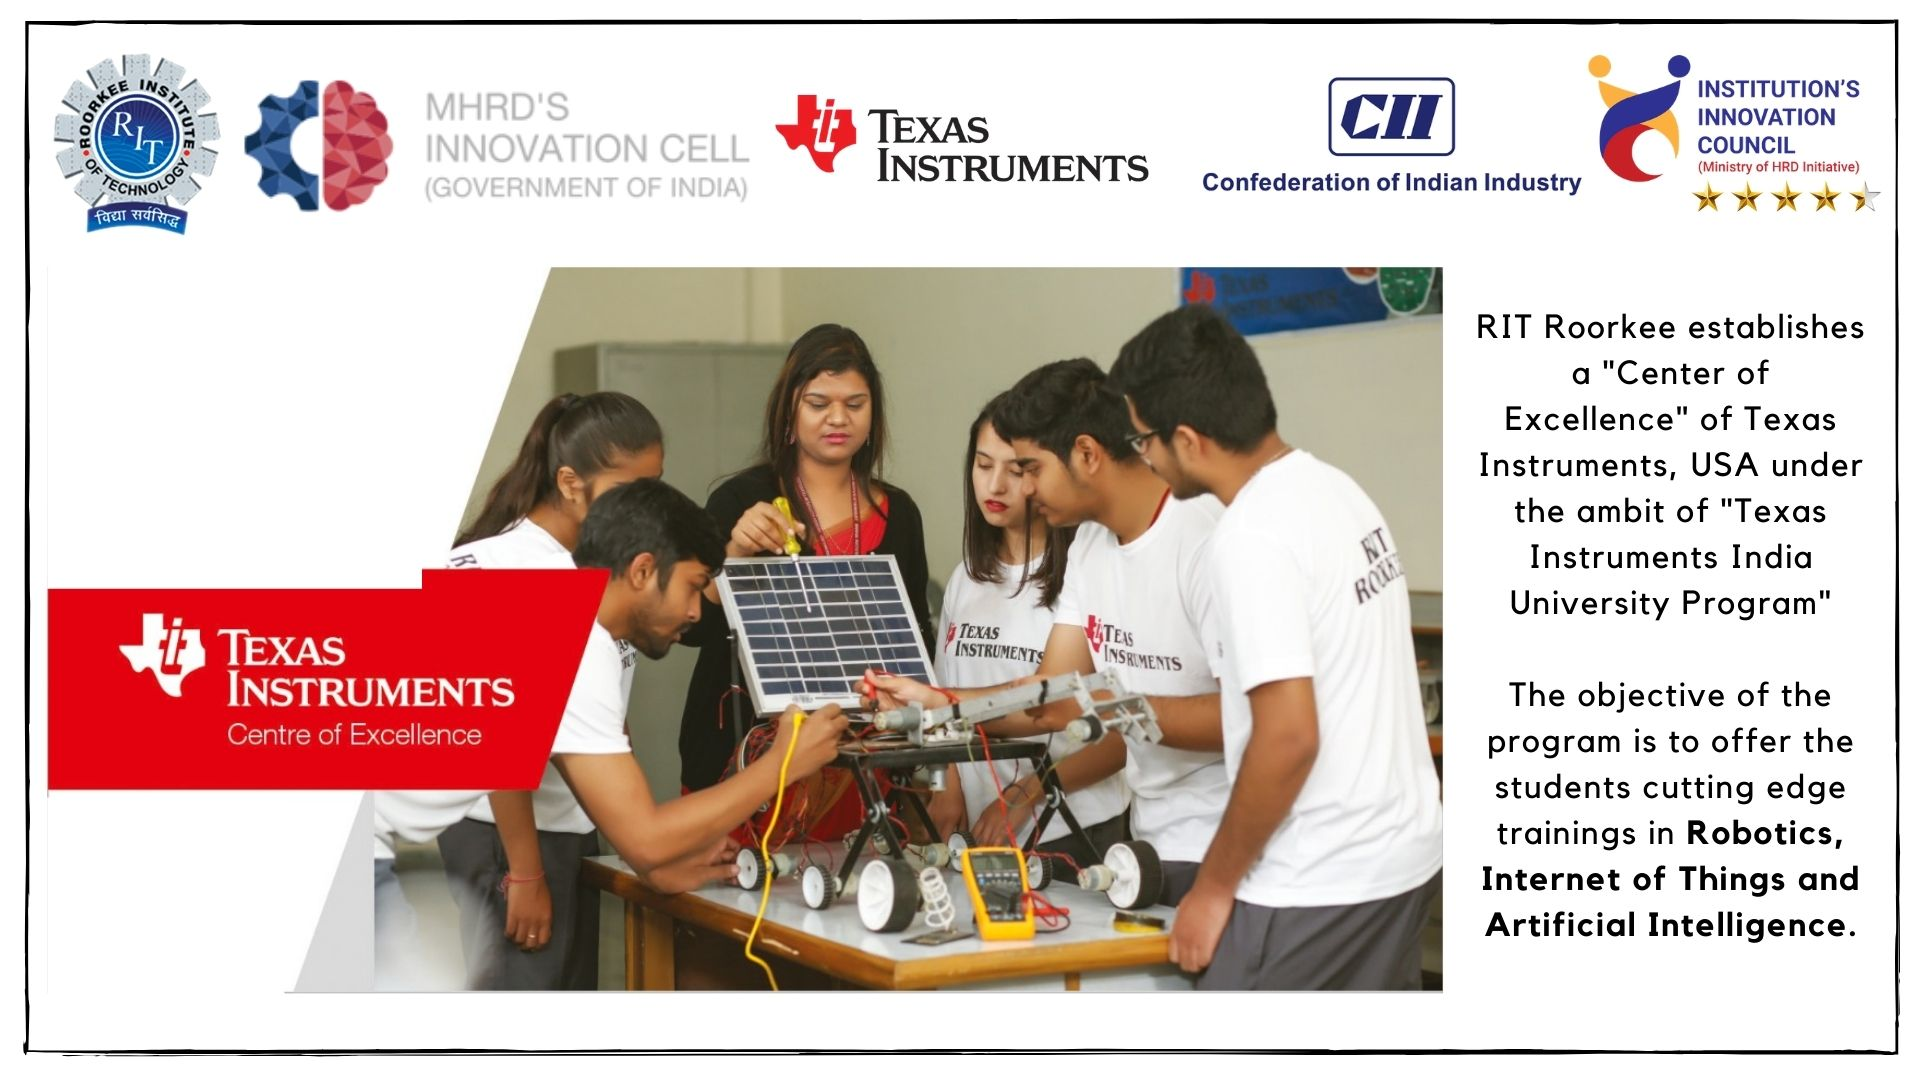 RIT is Centre of Excellence - Texas Instruments Innovation Lab